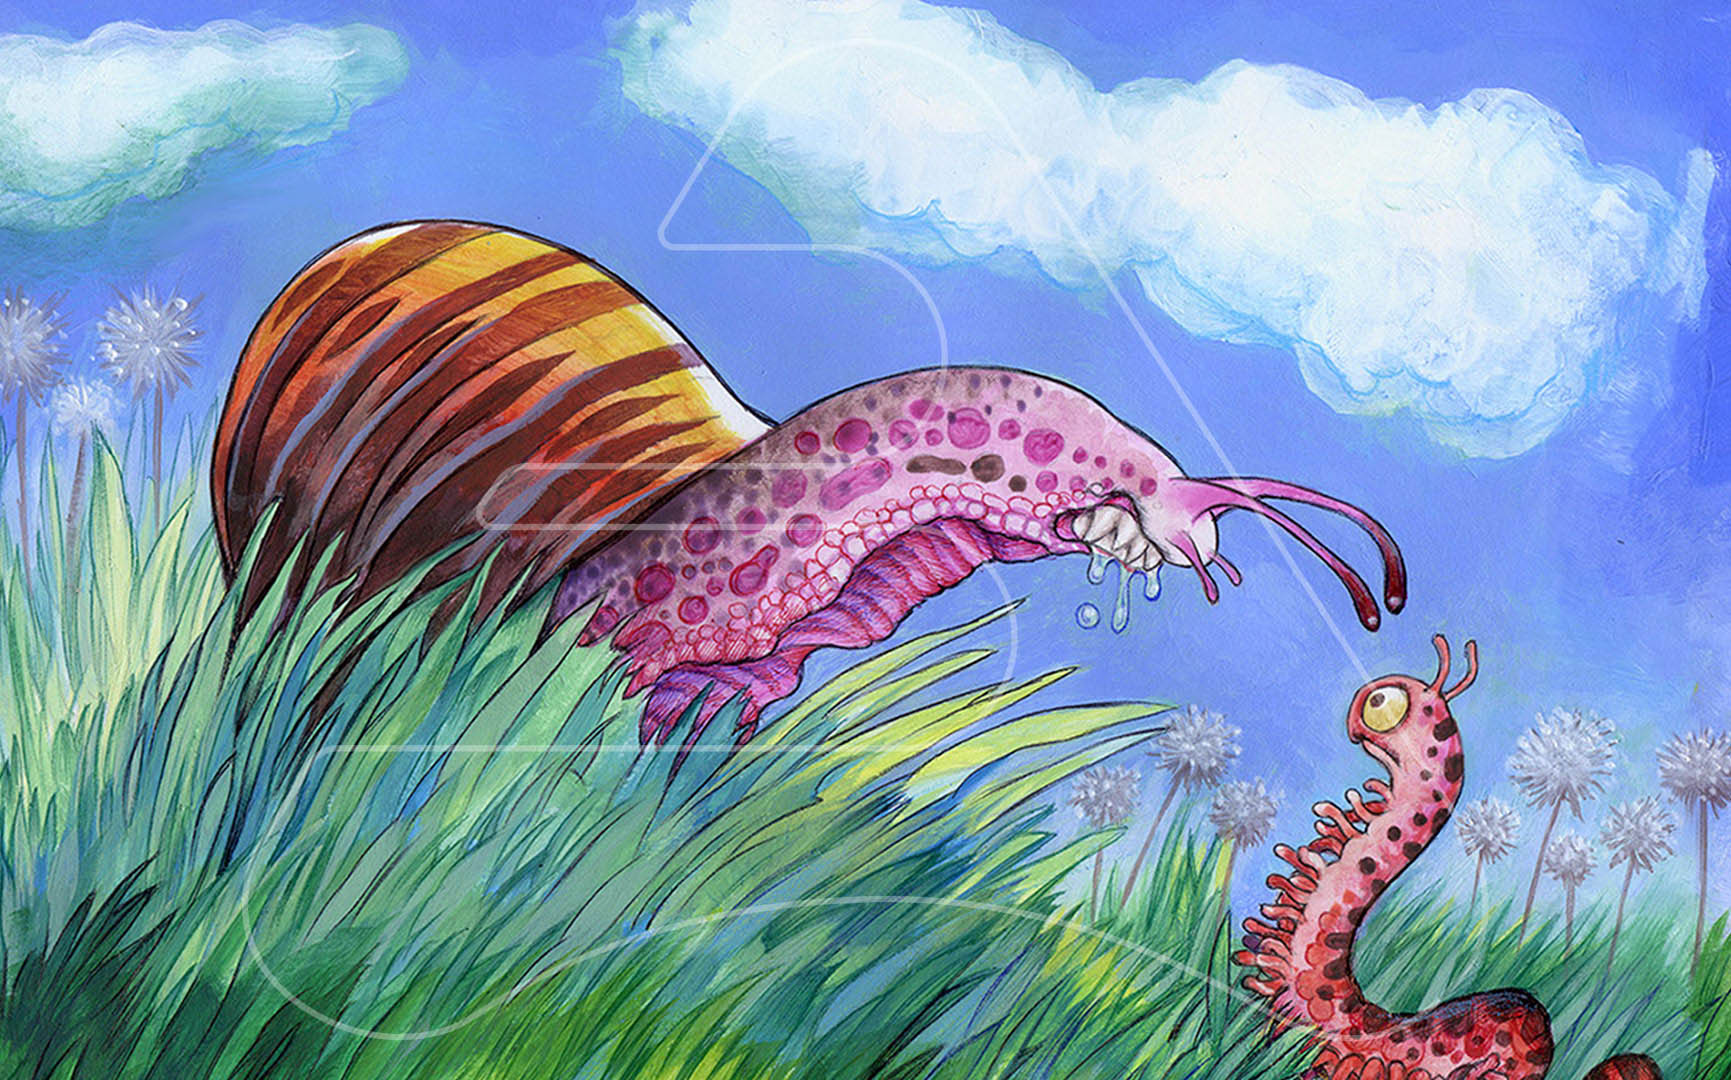 Snail Predator / G+J publishers / Watercolor